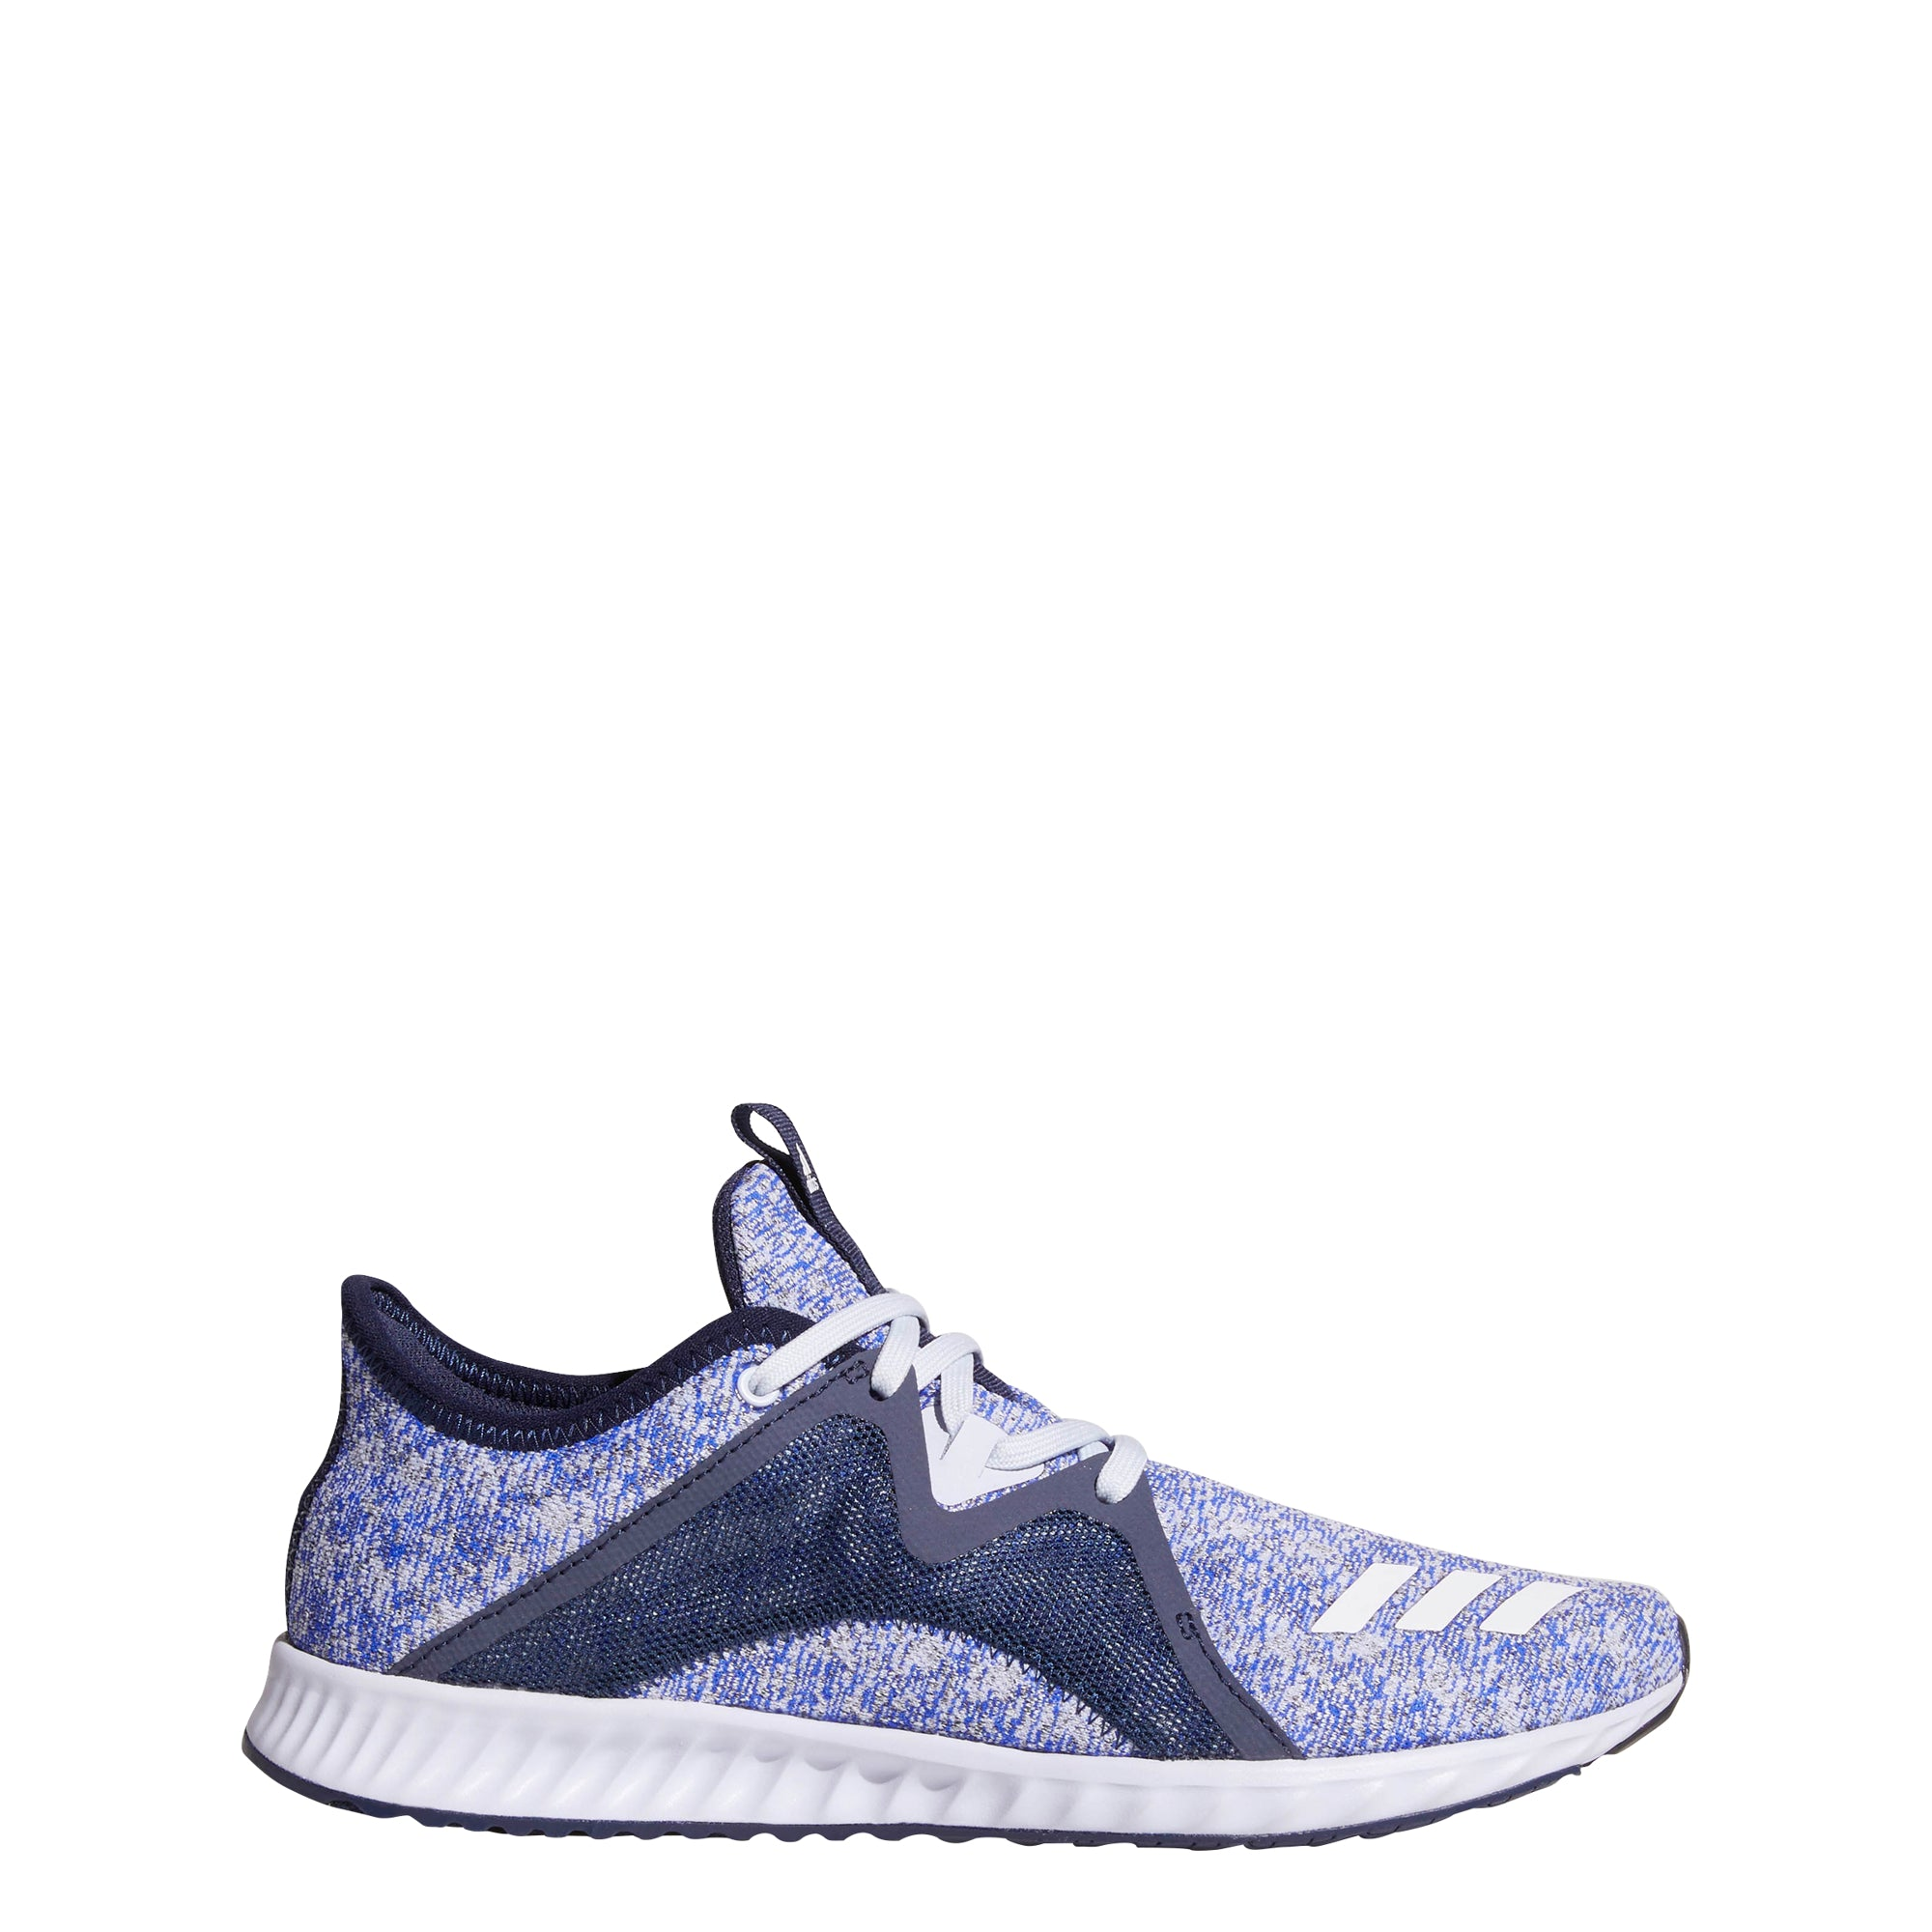 18420a409 Buy adidas Women edge lux 2 w Running Shoes